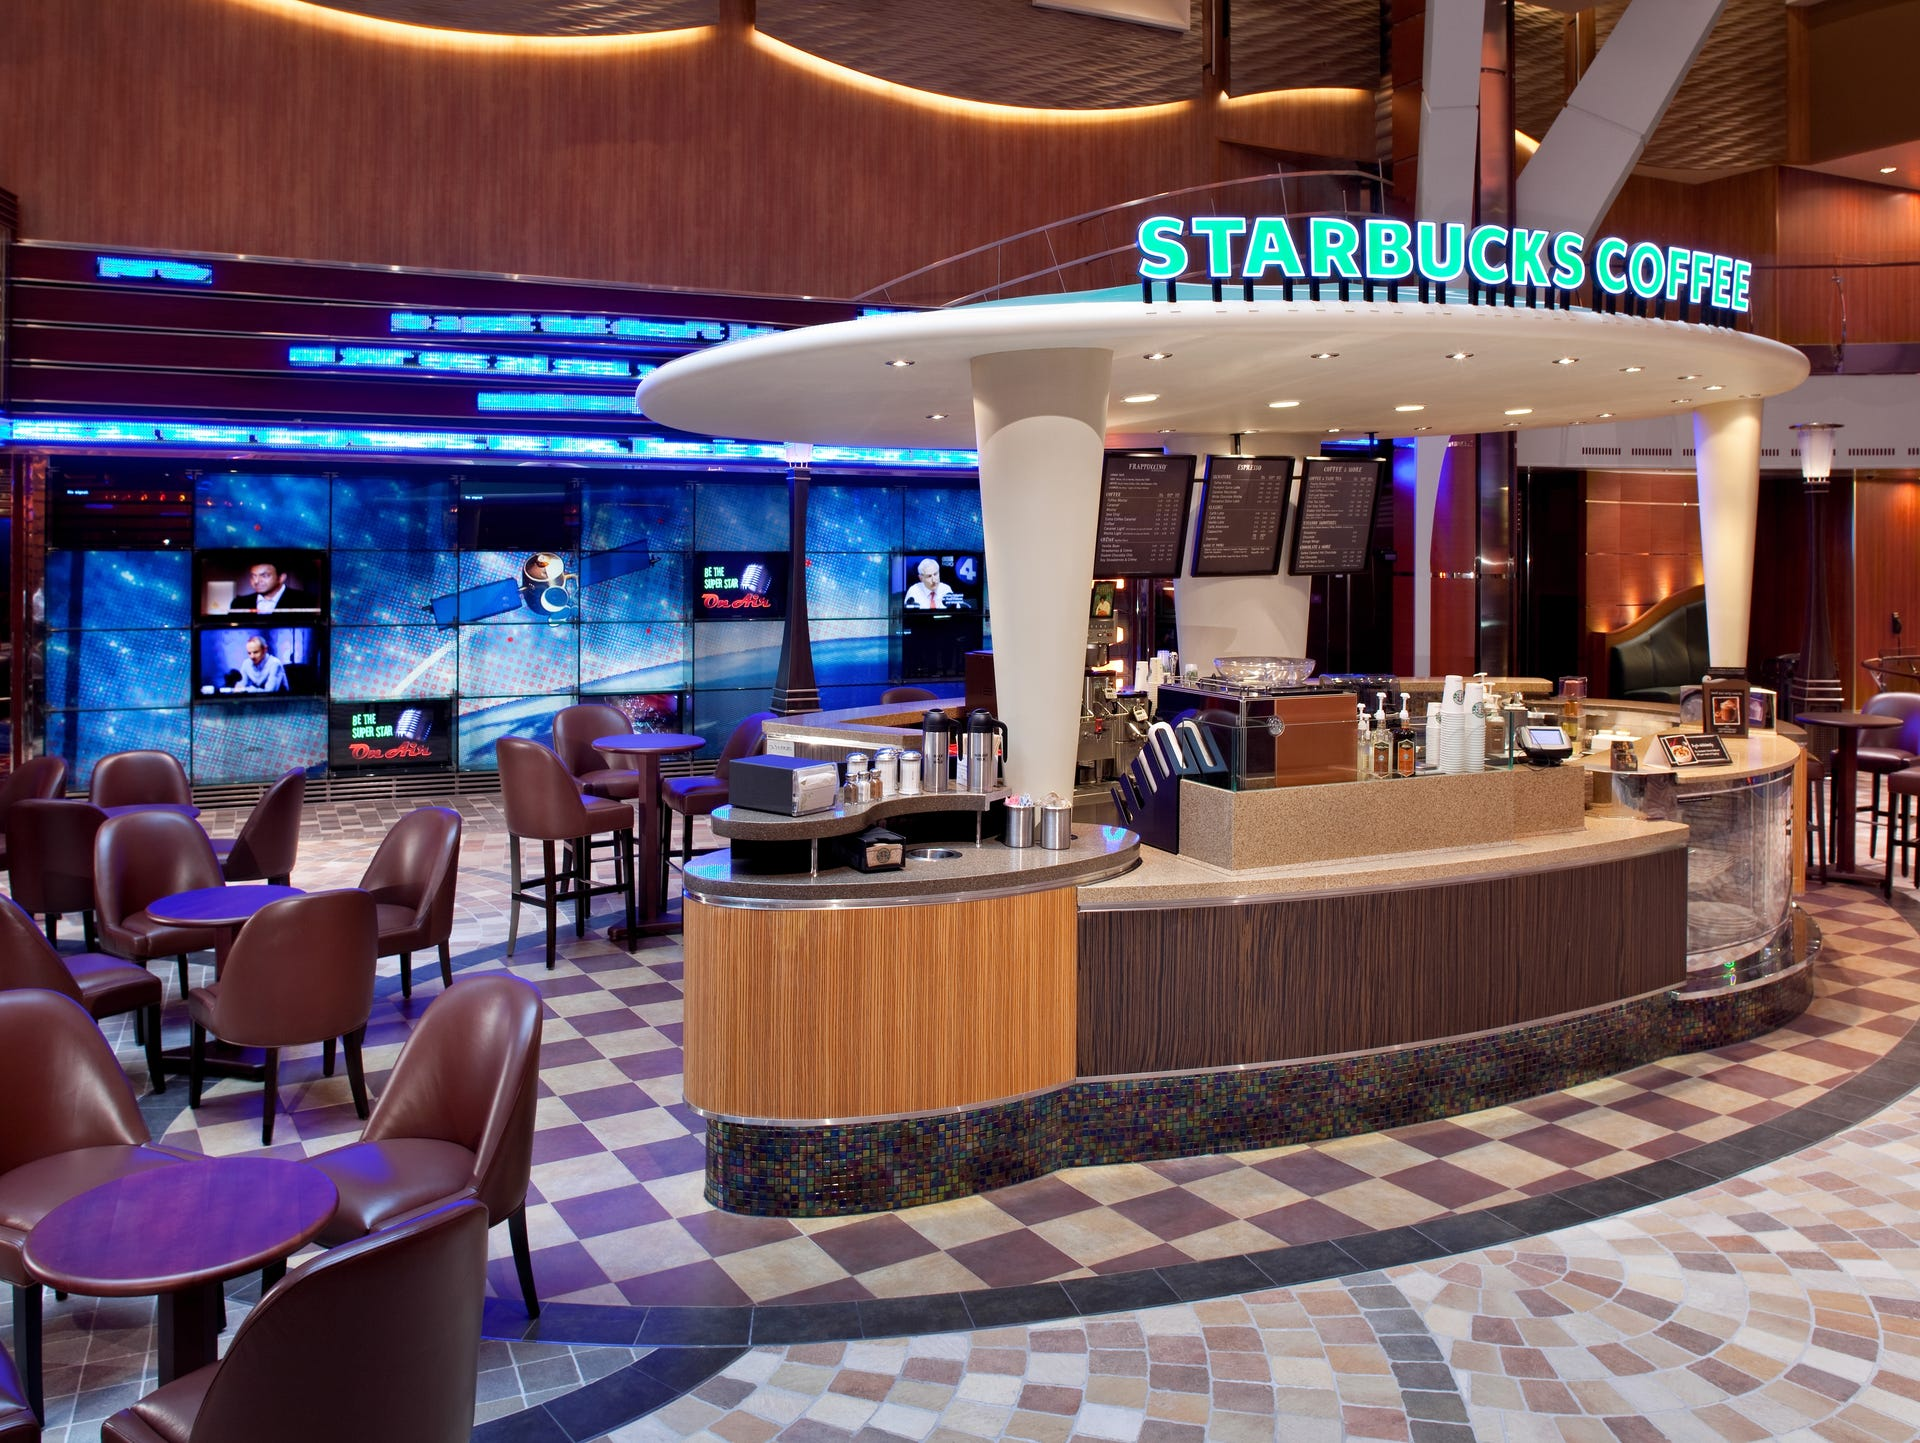 The First Starbucks At Sea Debuted In 2010 On Royal Caribbean's Inspiration Explorer Of The Seas Dining Room Inspiration